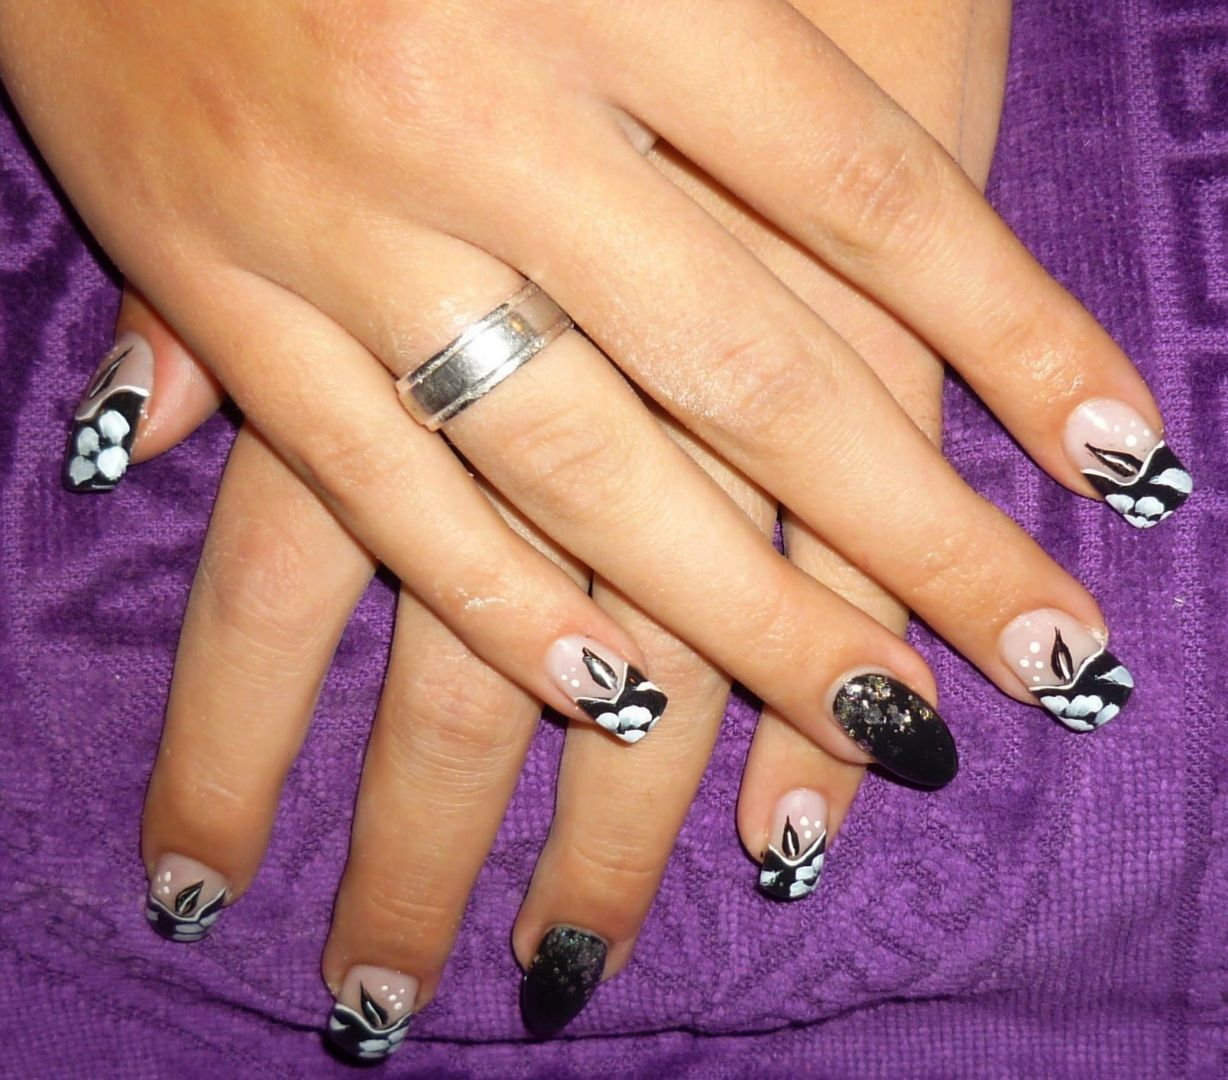 Ongles mixtes